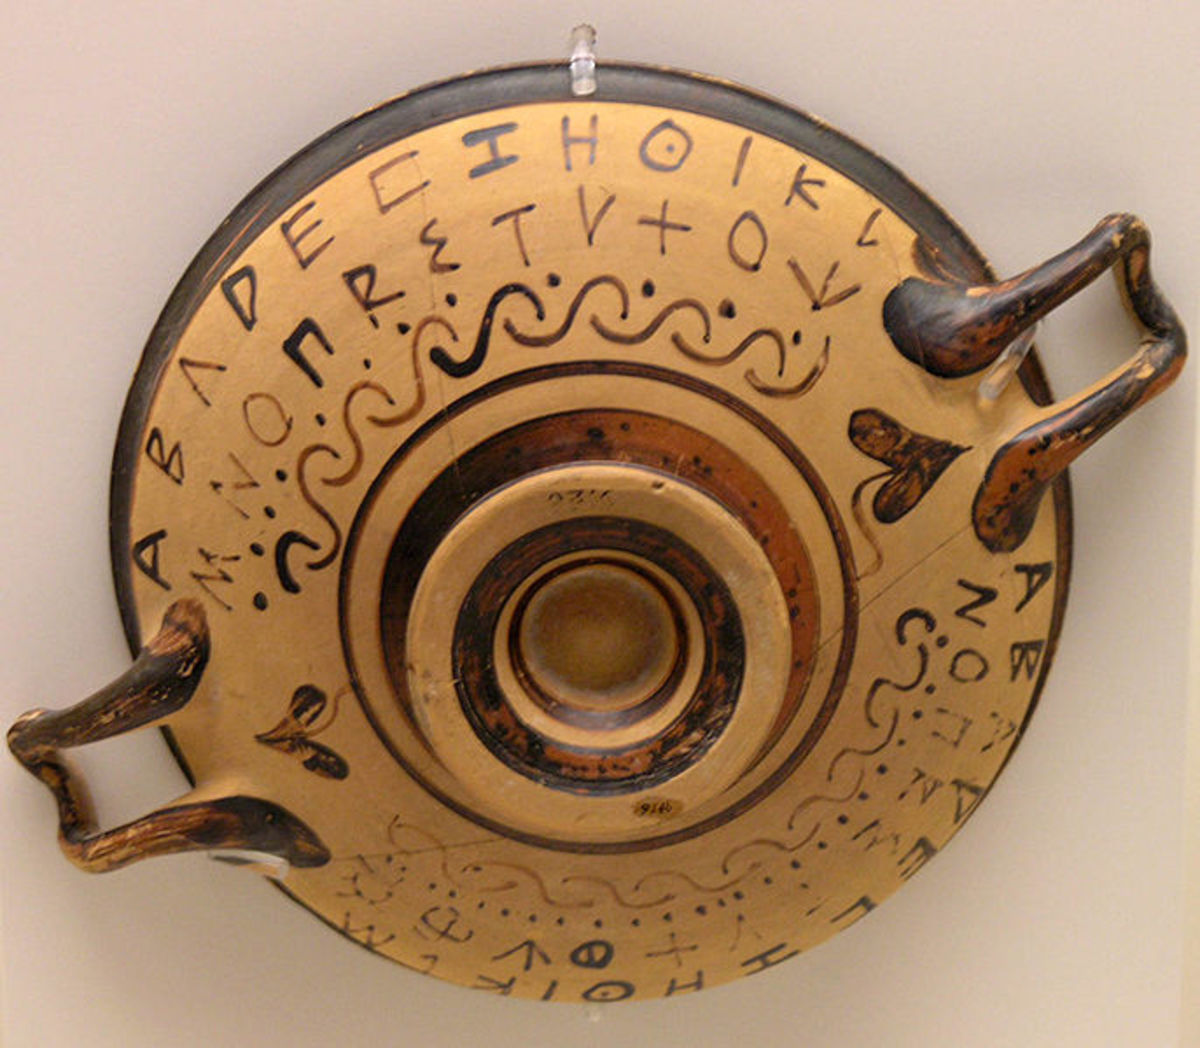 Early Greek alphabet painted on an Attic cup.